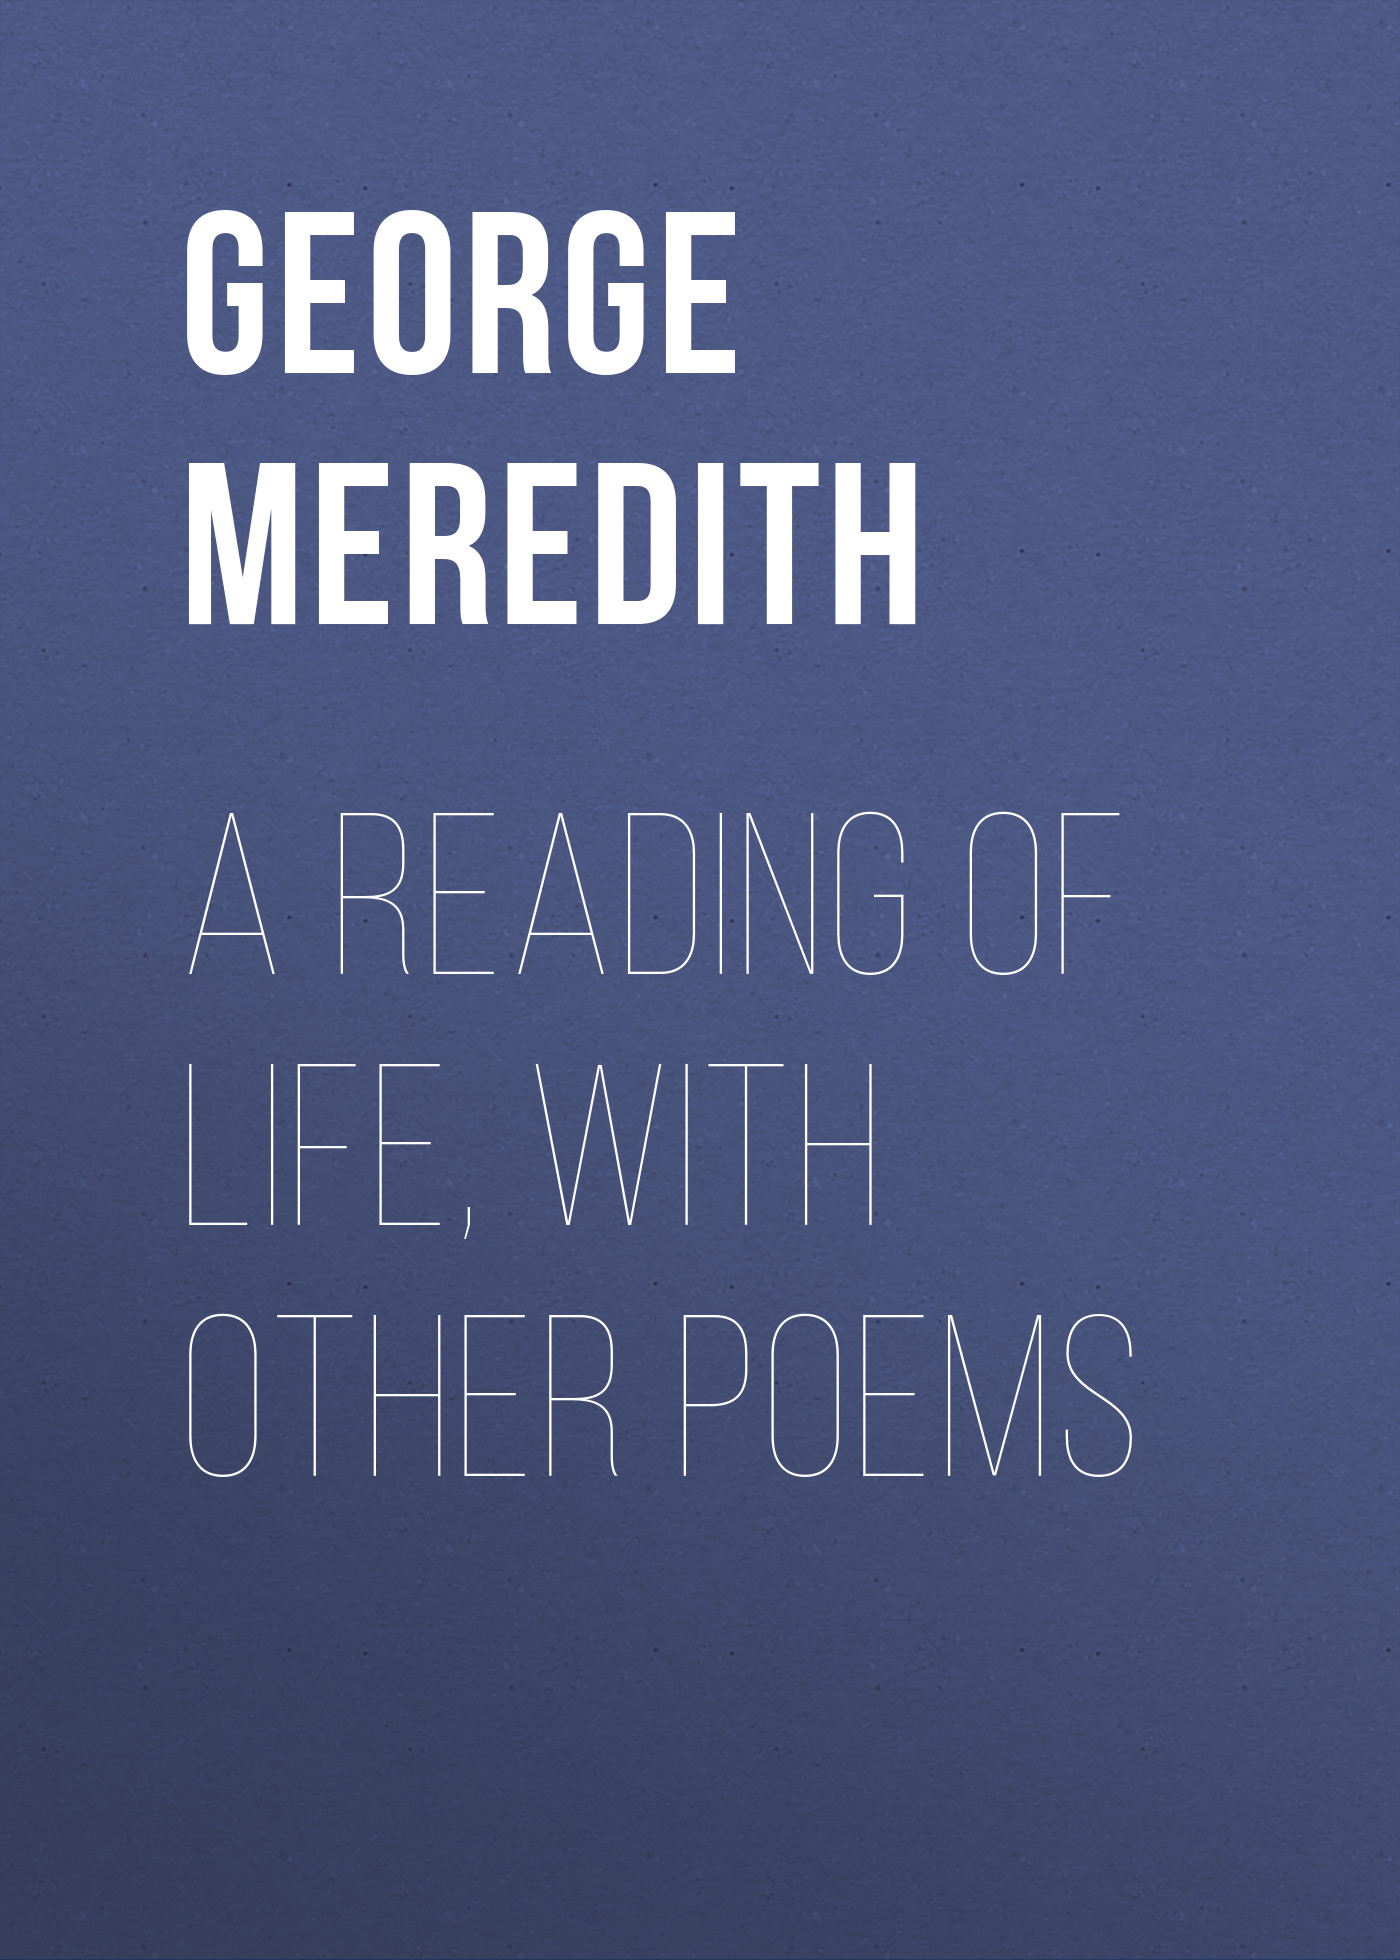 George Meredith A Reading of Life, with Other Poems